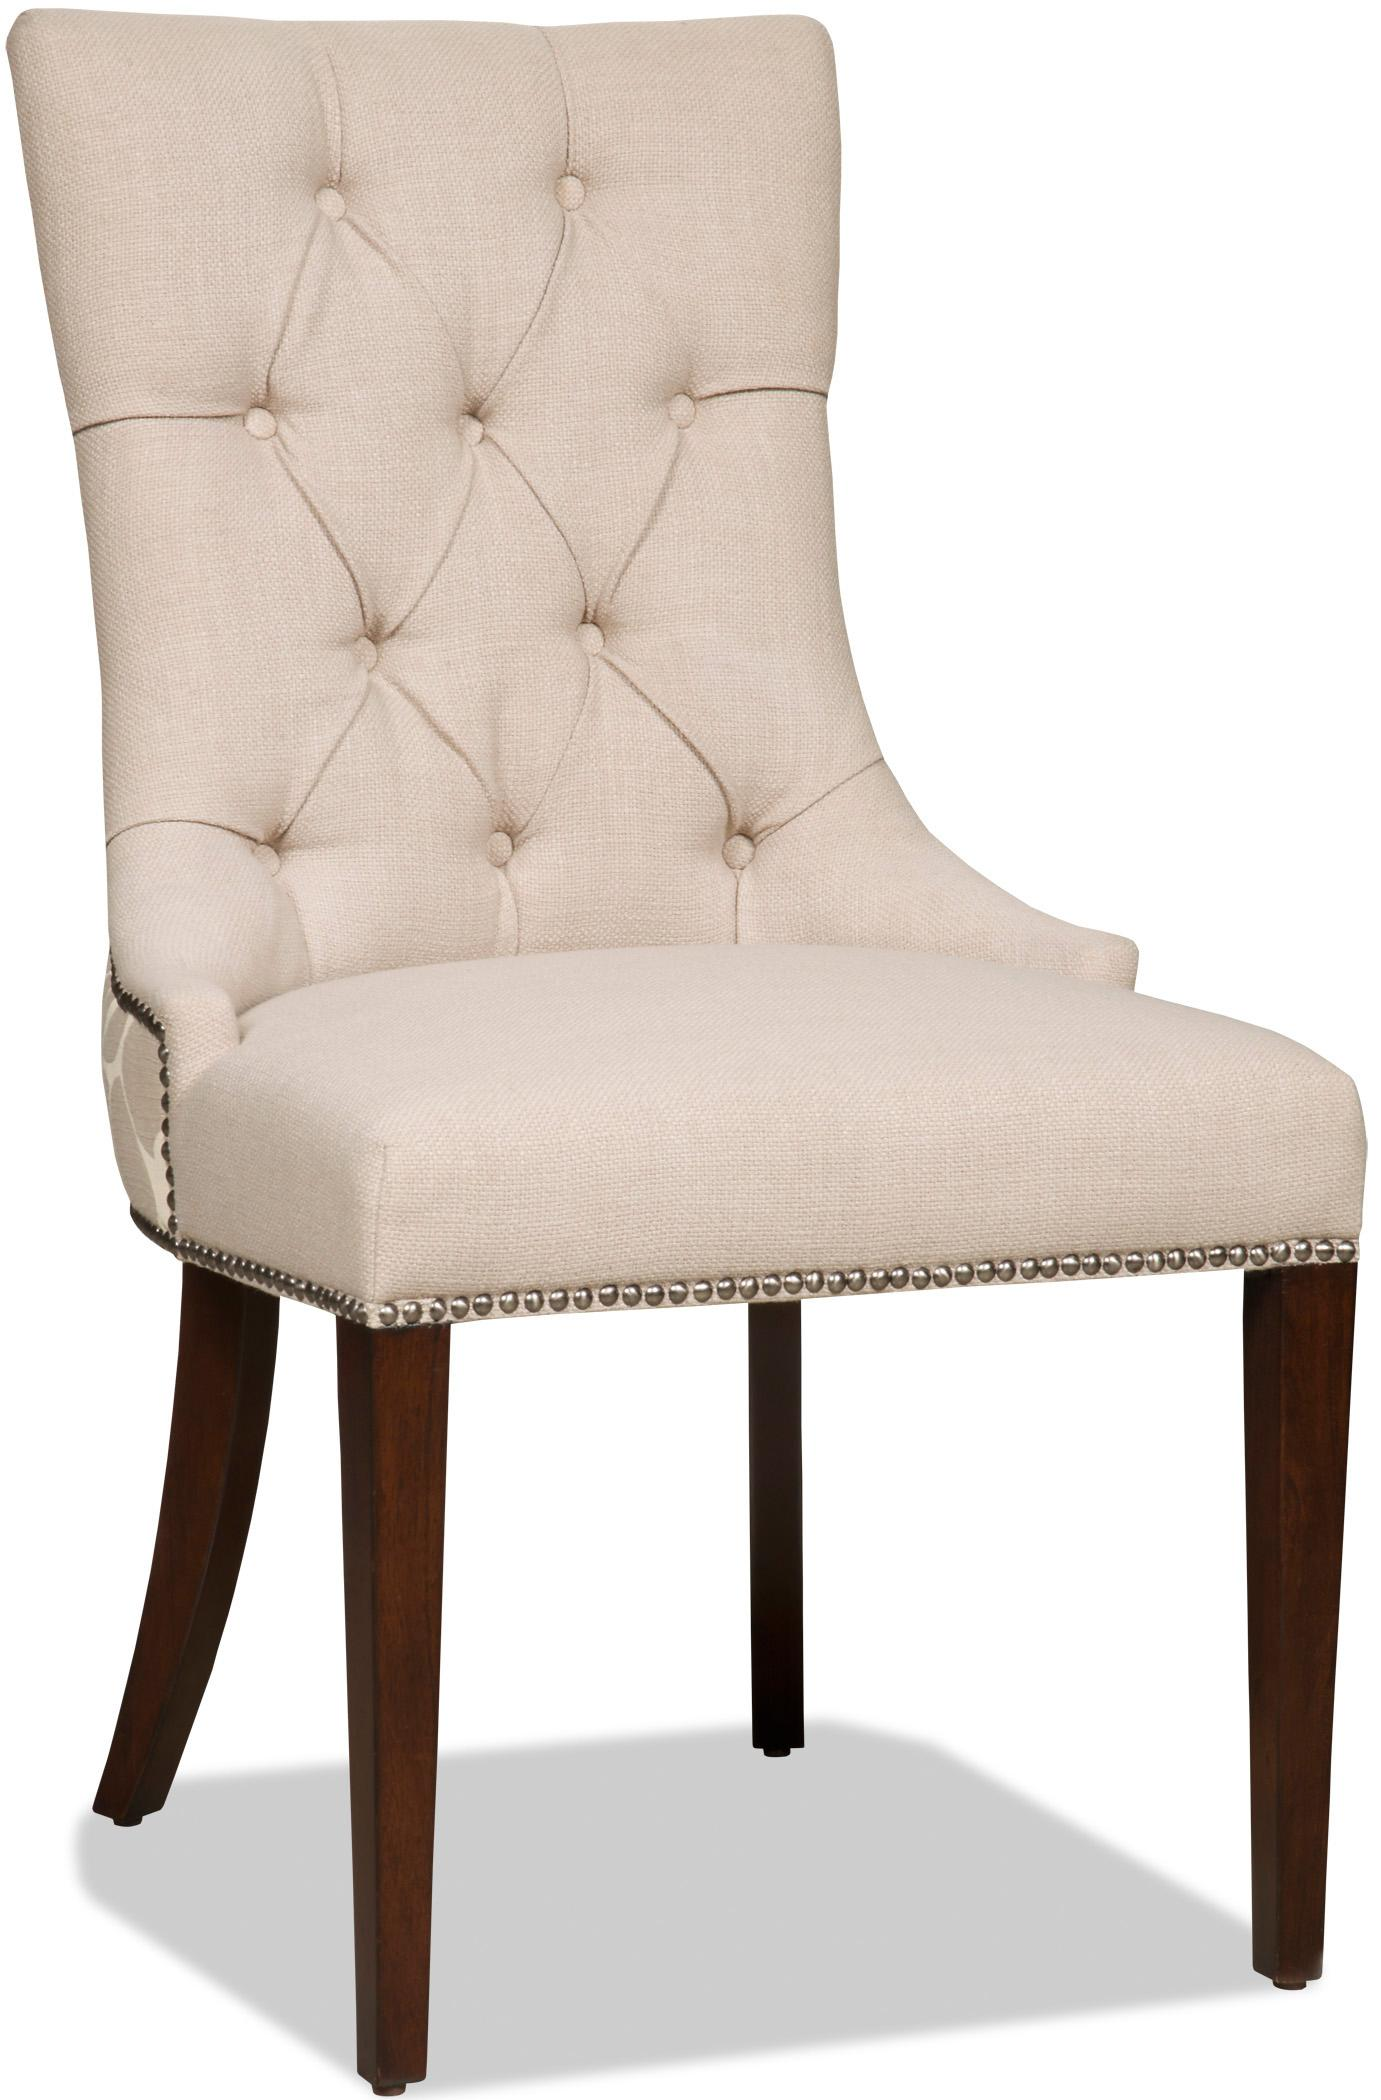 Hooker Furniture Dining Chairs Upholstered Dining Side